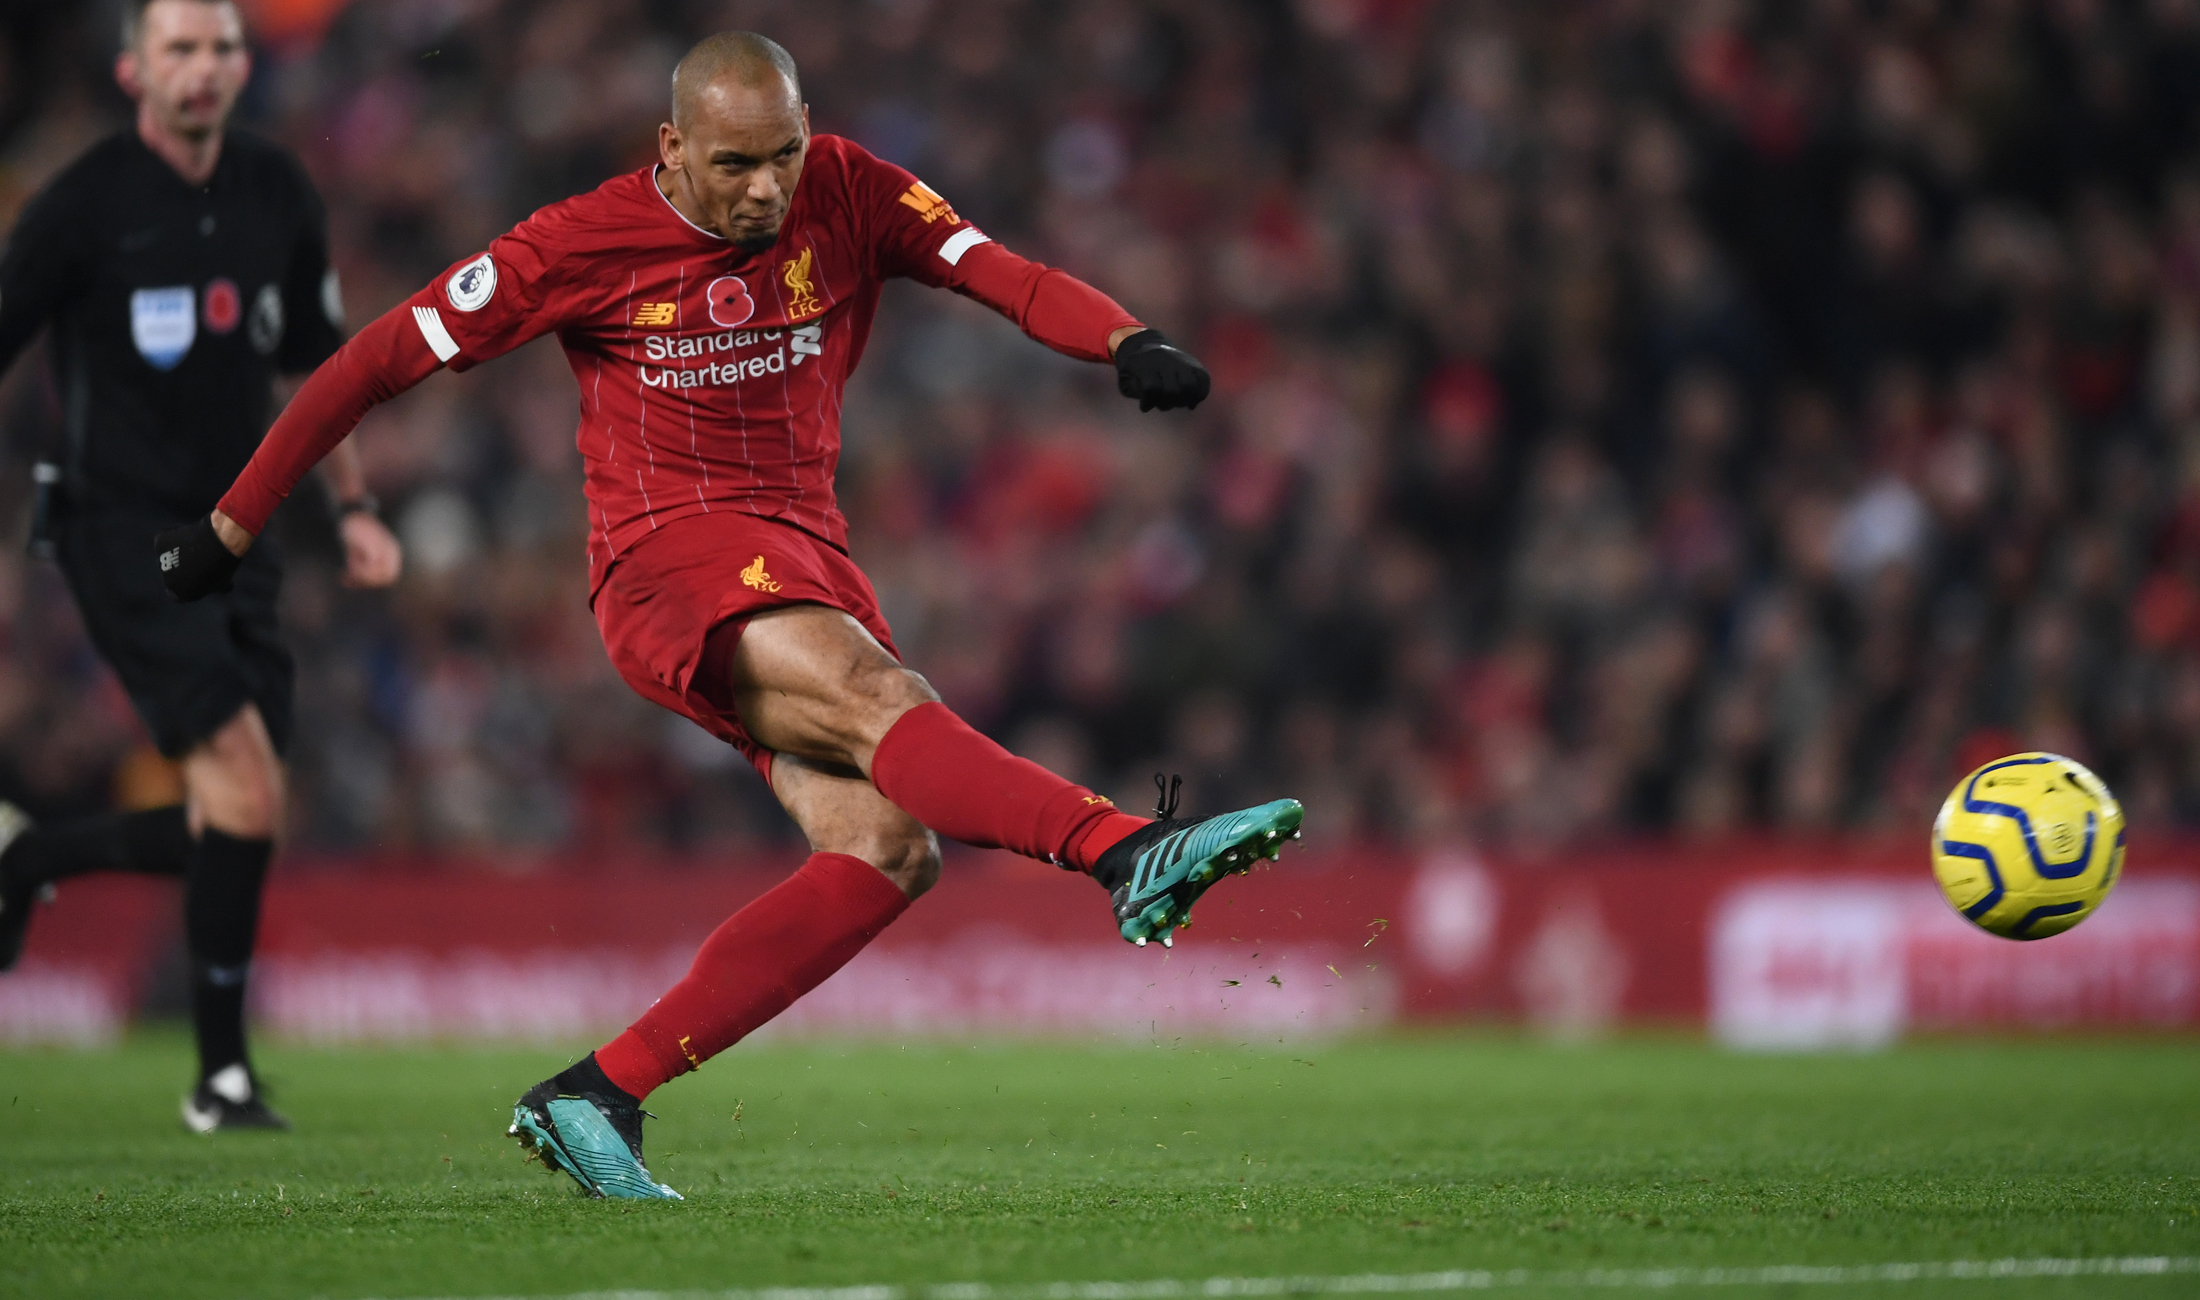 Brazil can feel Fabinho's confidence – Tite